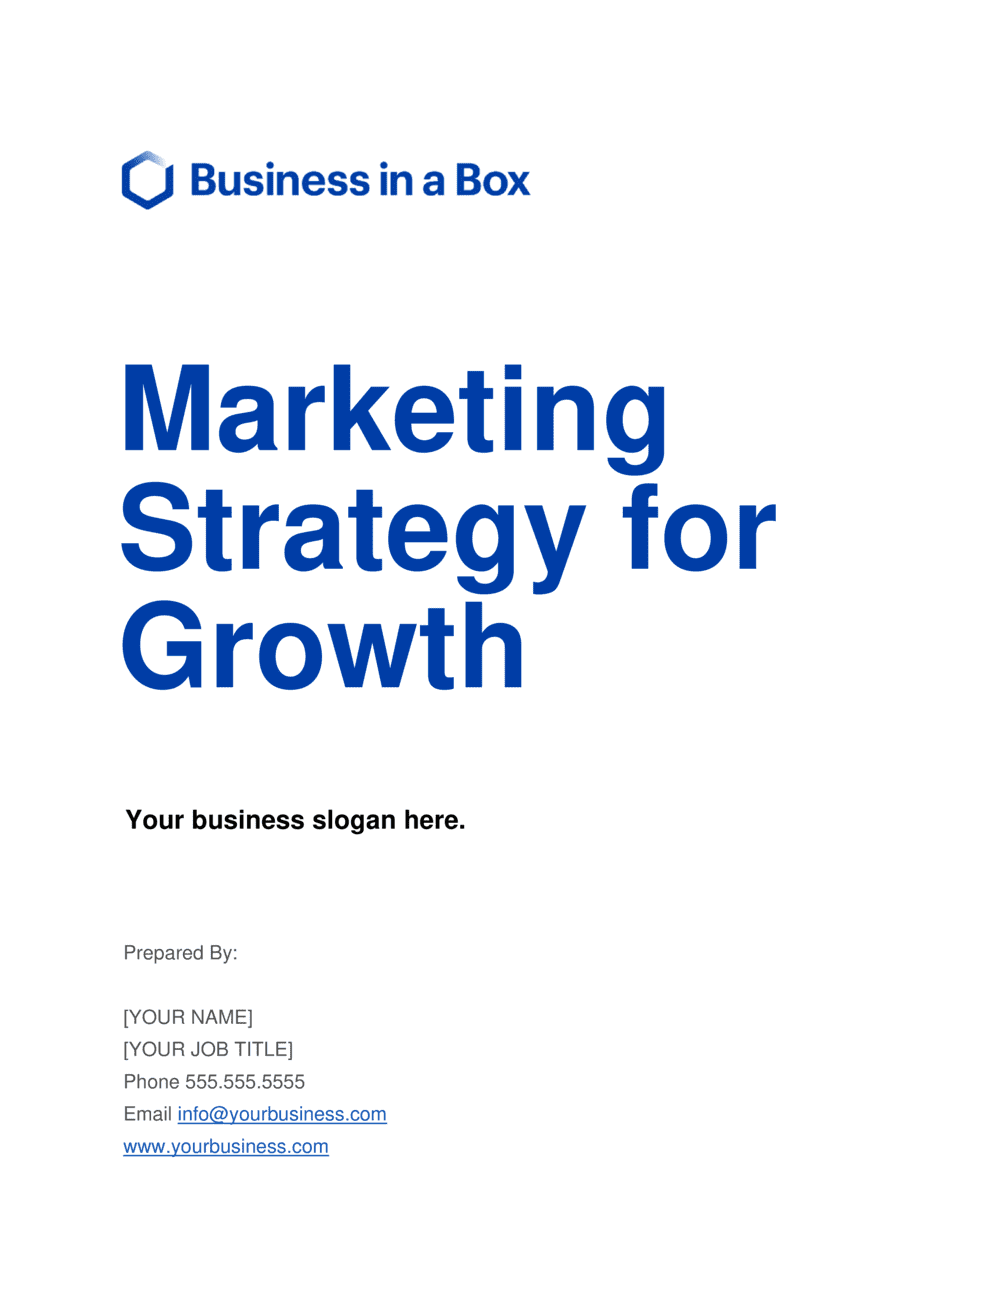 Business-in-a-Box's Marketing Strategy For Growth Template